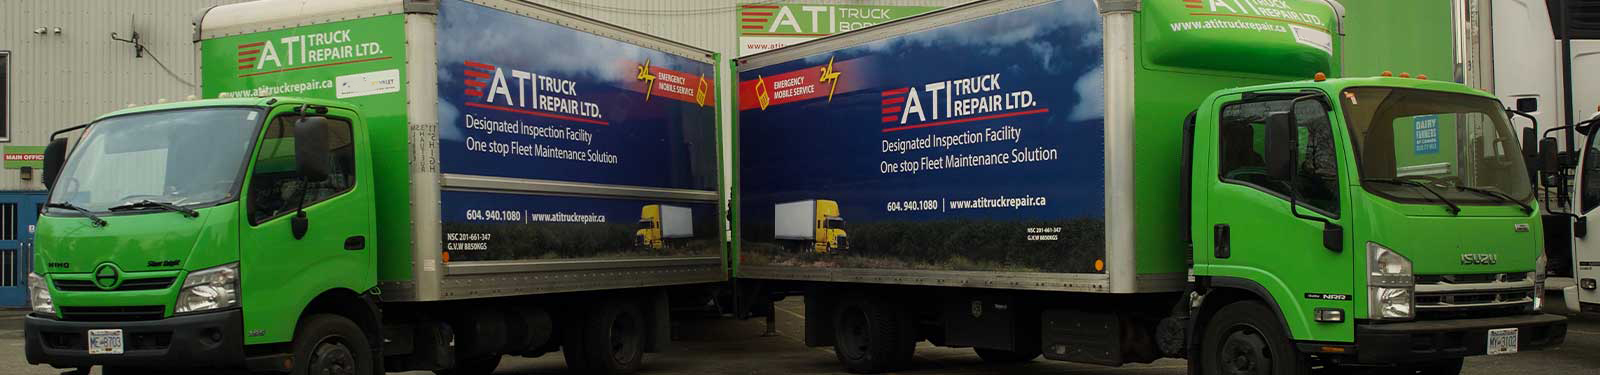 ATI Truck Repair Ltd. - Inside Garage